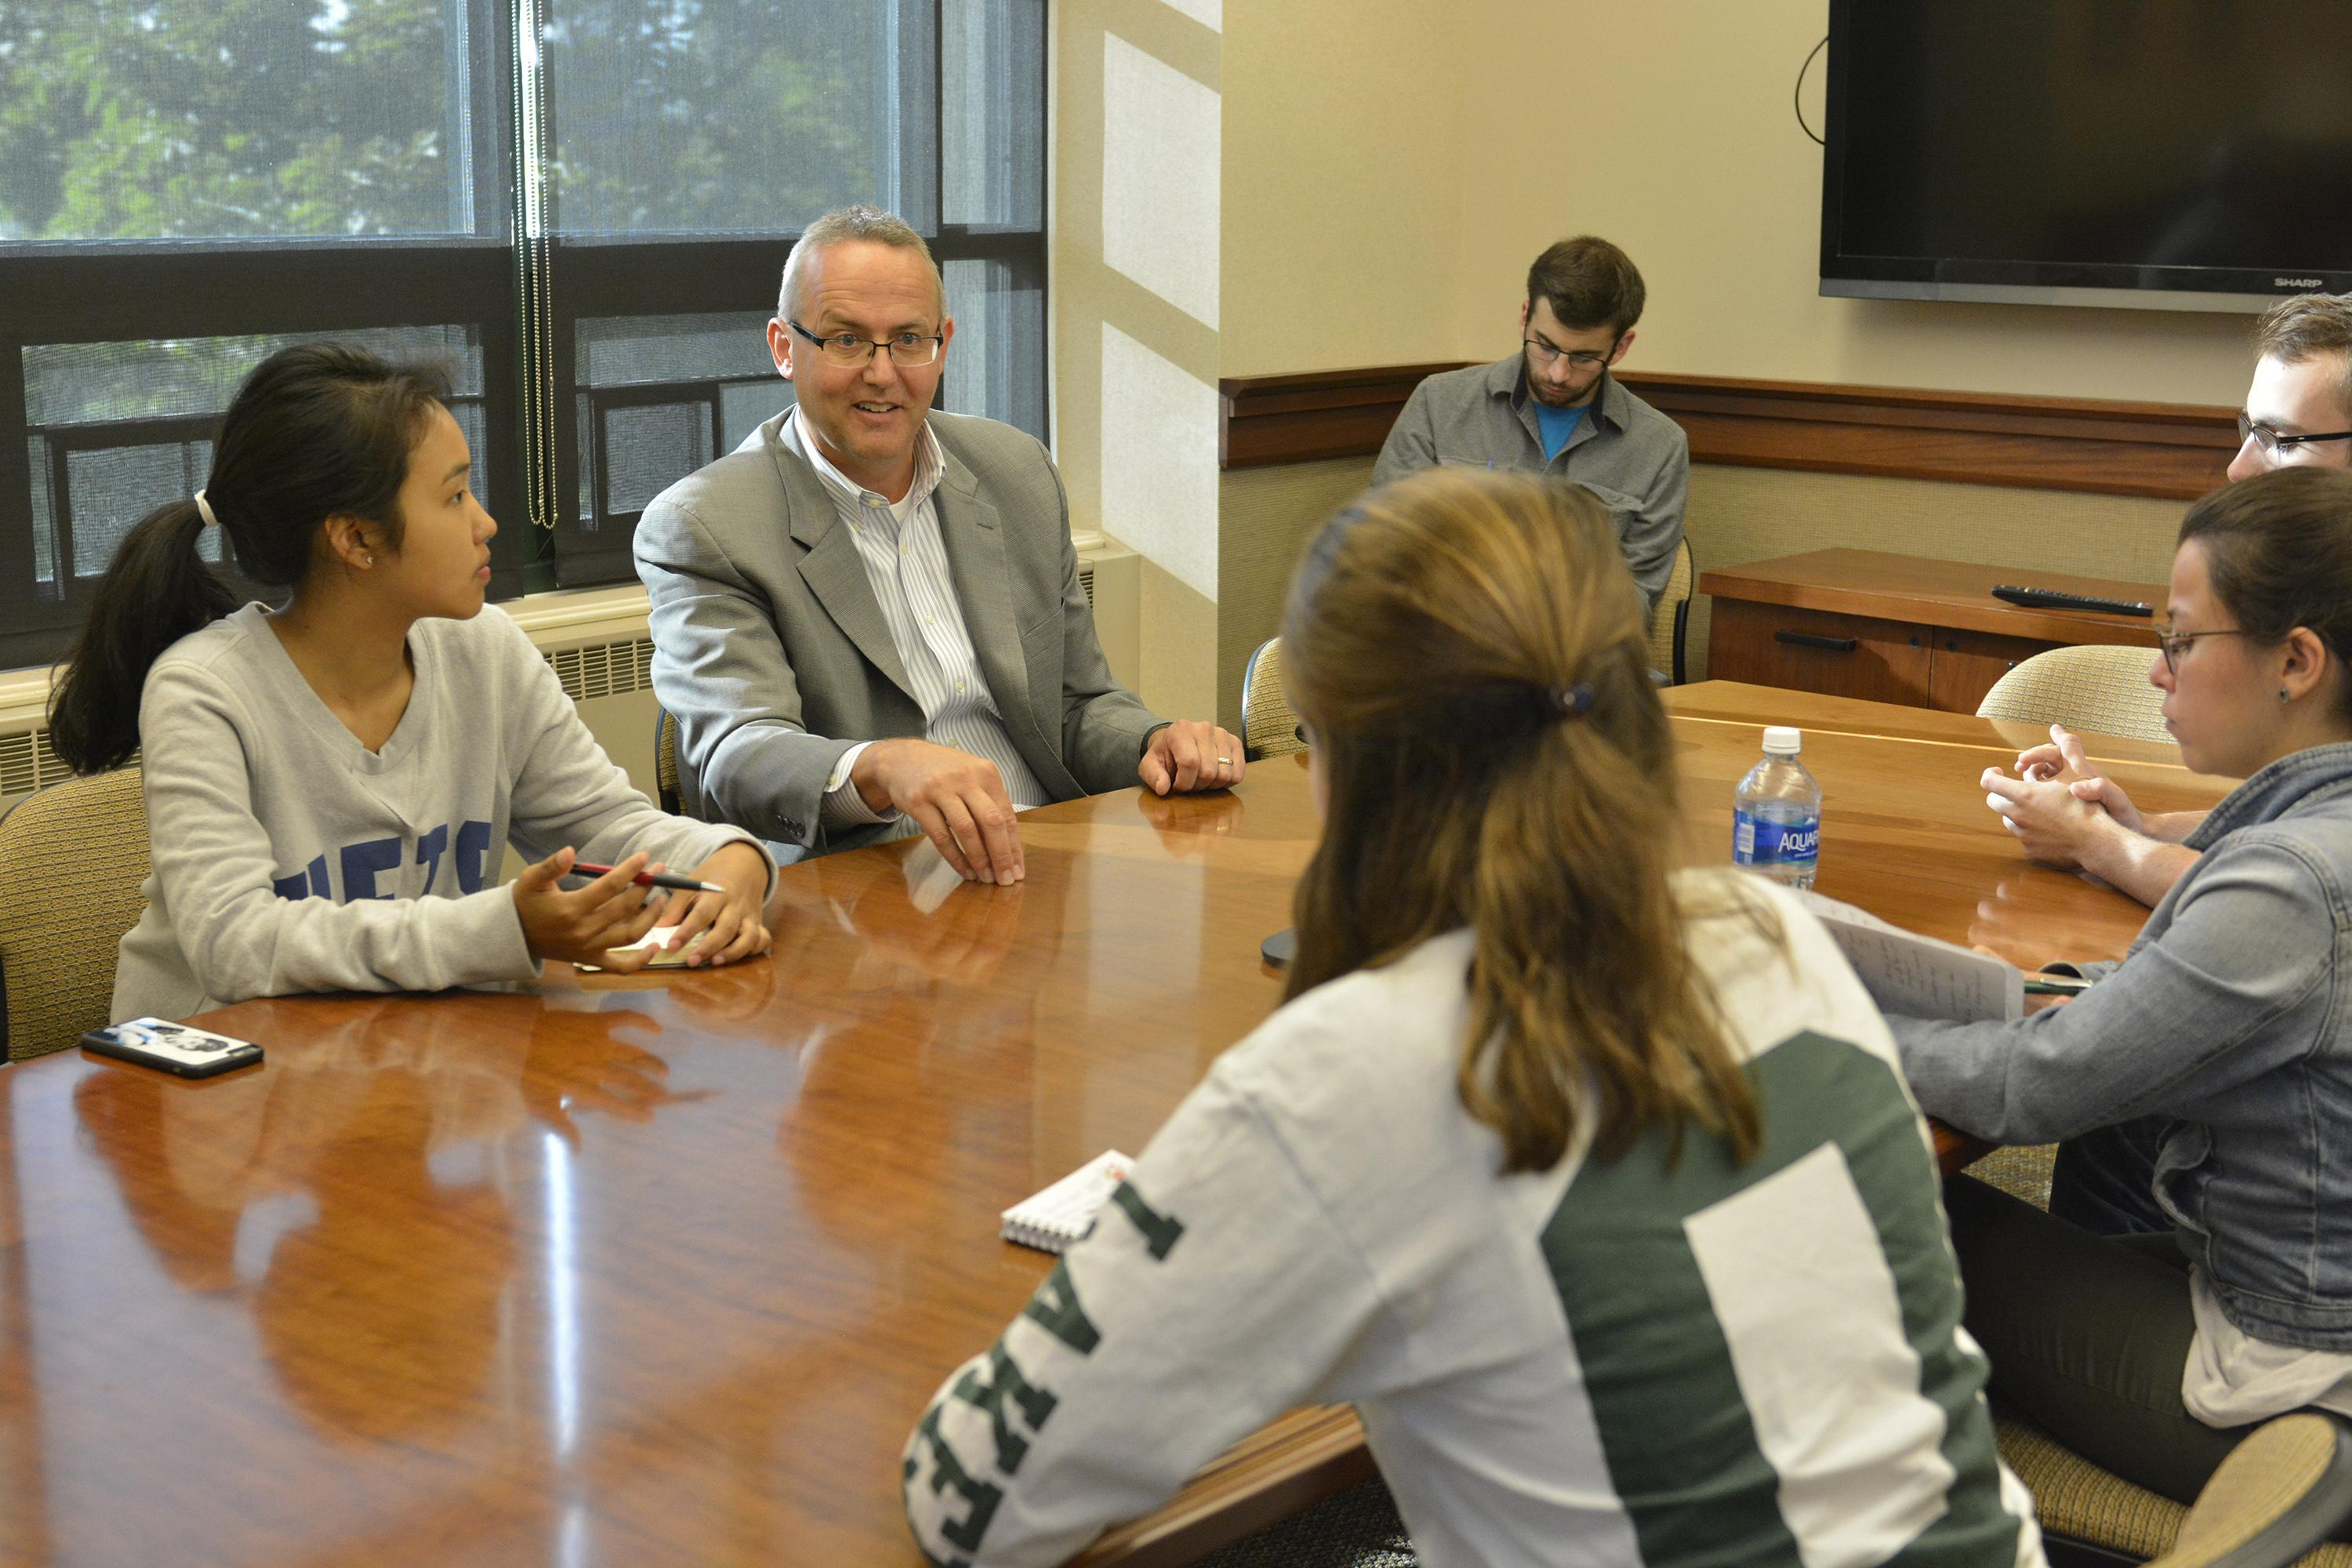 School of Business alumnus Kevin Stickles working with students